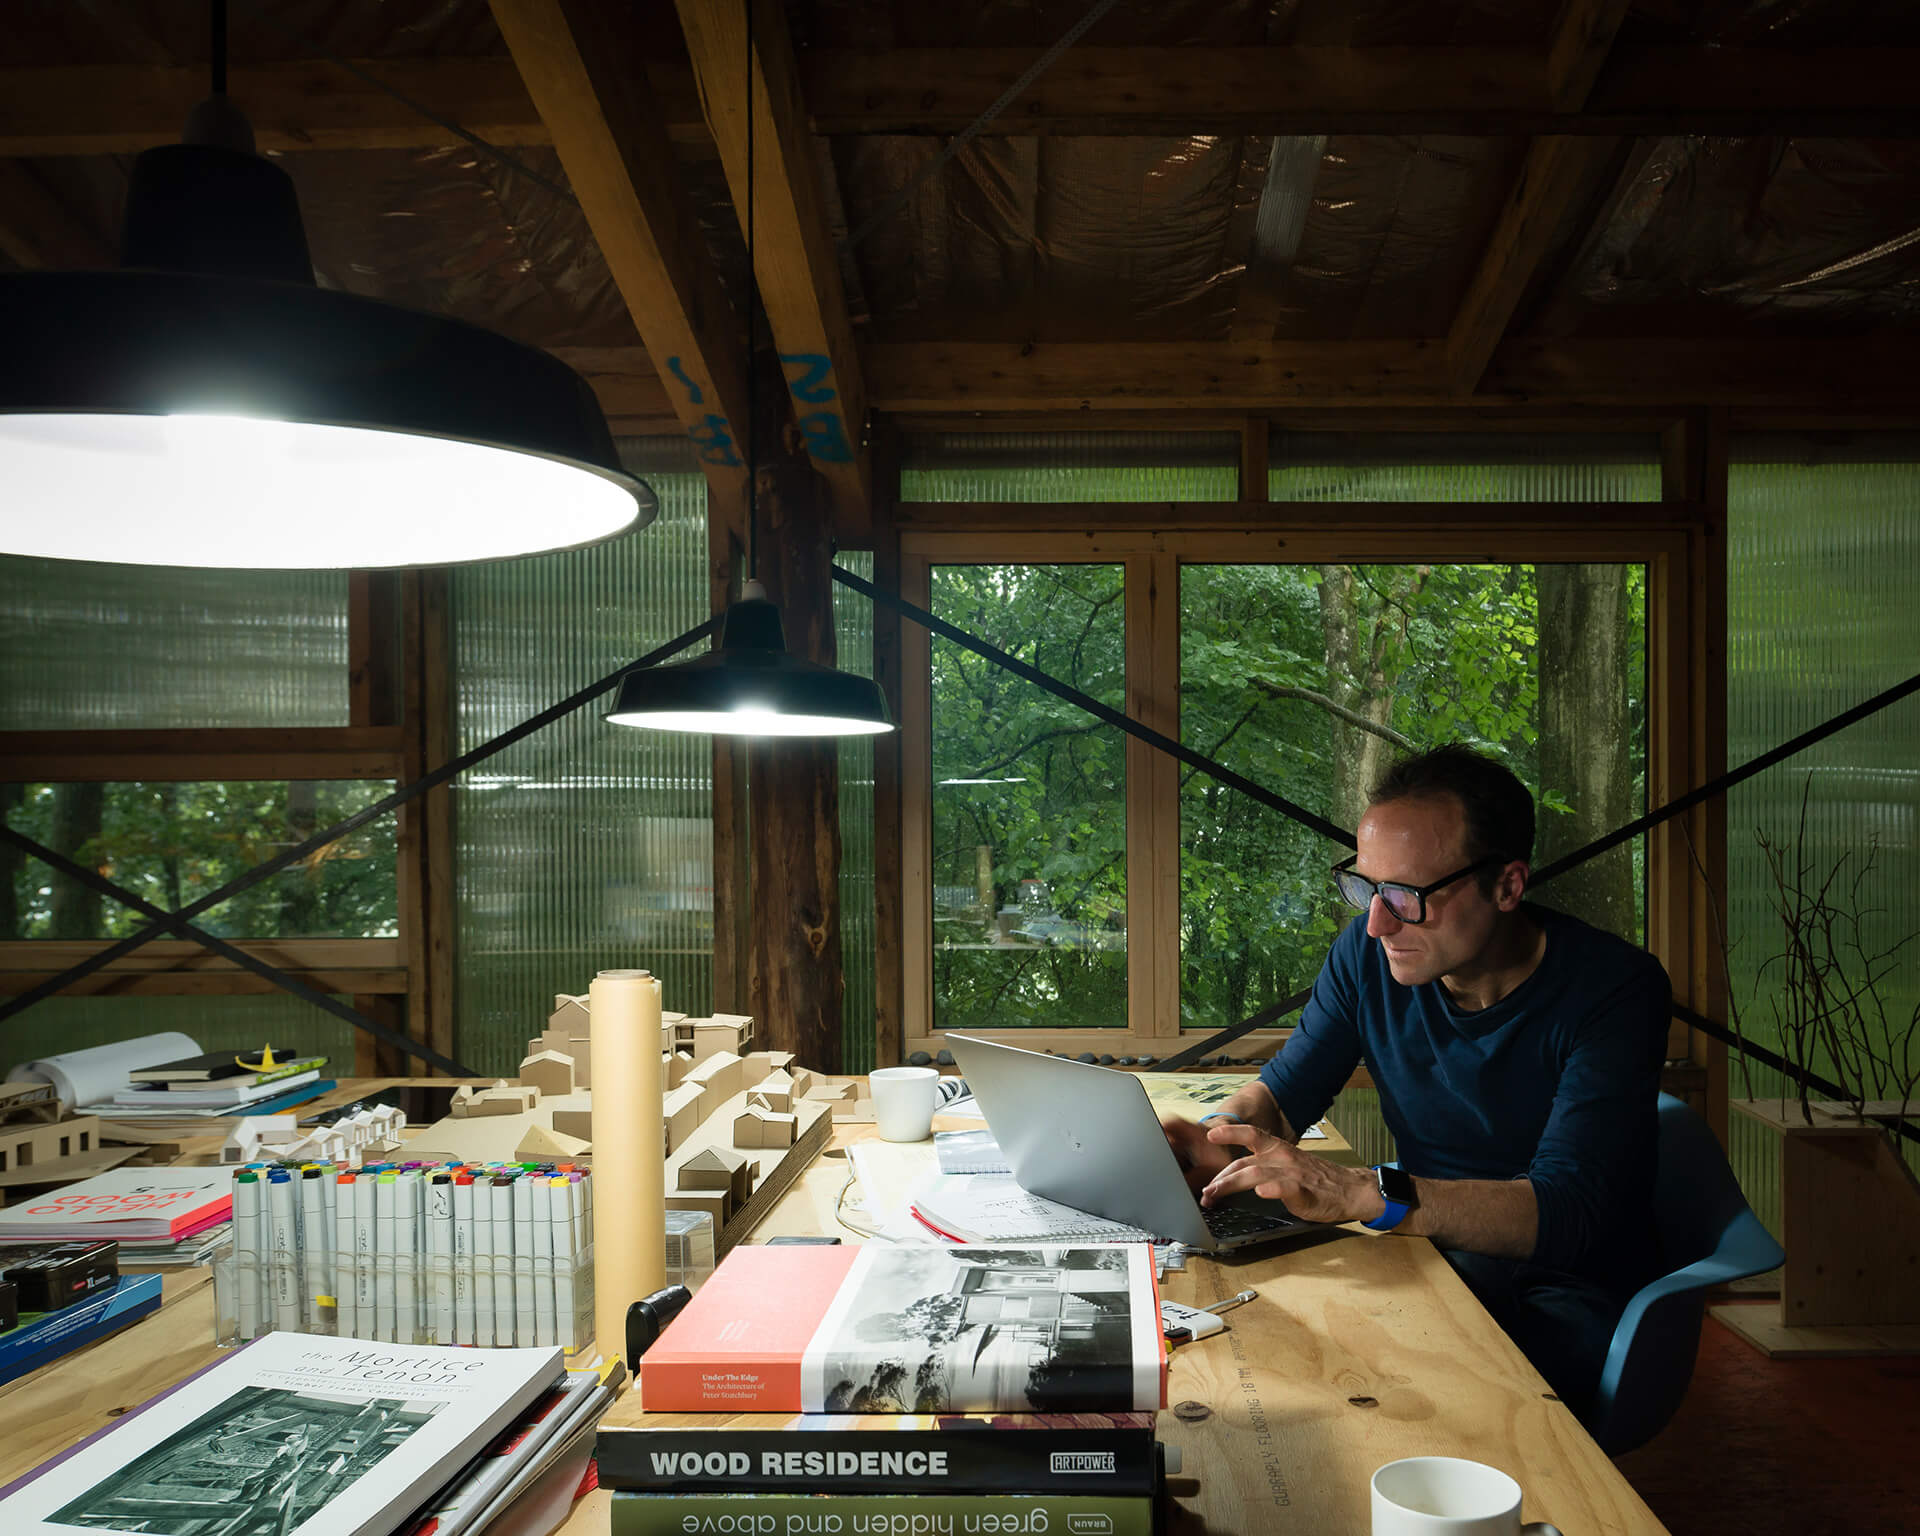 Piers Taylor at his Invisible Studio in the UK, which he believes is his 'studio in the woods' | Practice – Invisible Studio | Jim Stephenson and Laura Mark| STIRworld